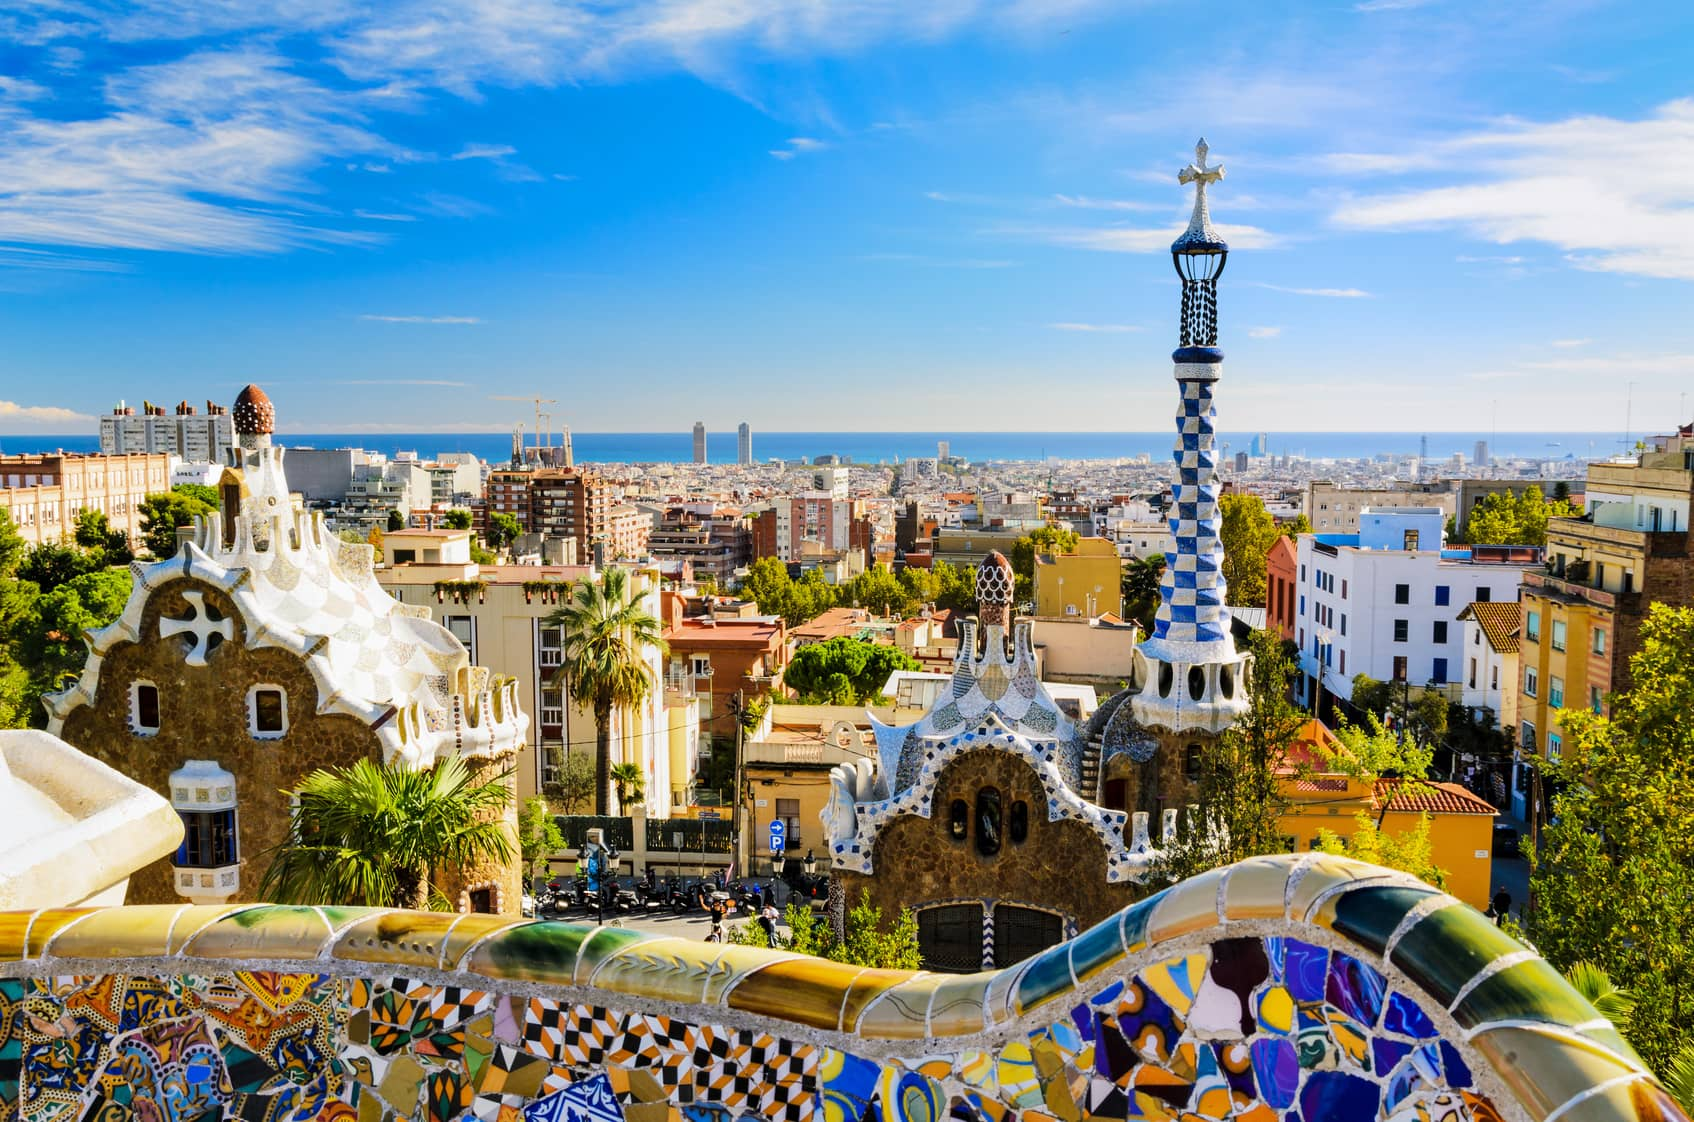 Casa Vicens Guided Tour & Skip-the-Line at Park Guell from Barcelona